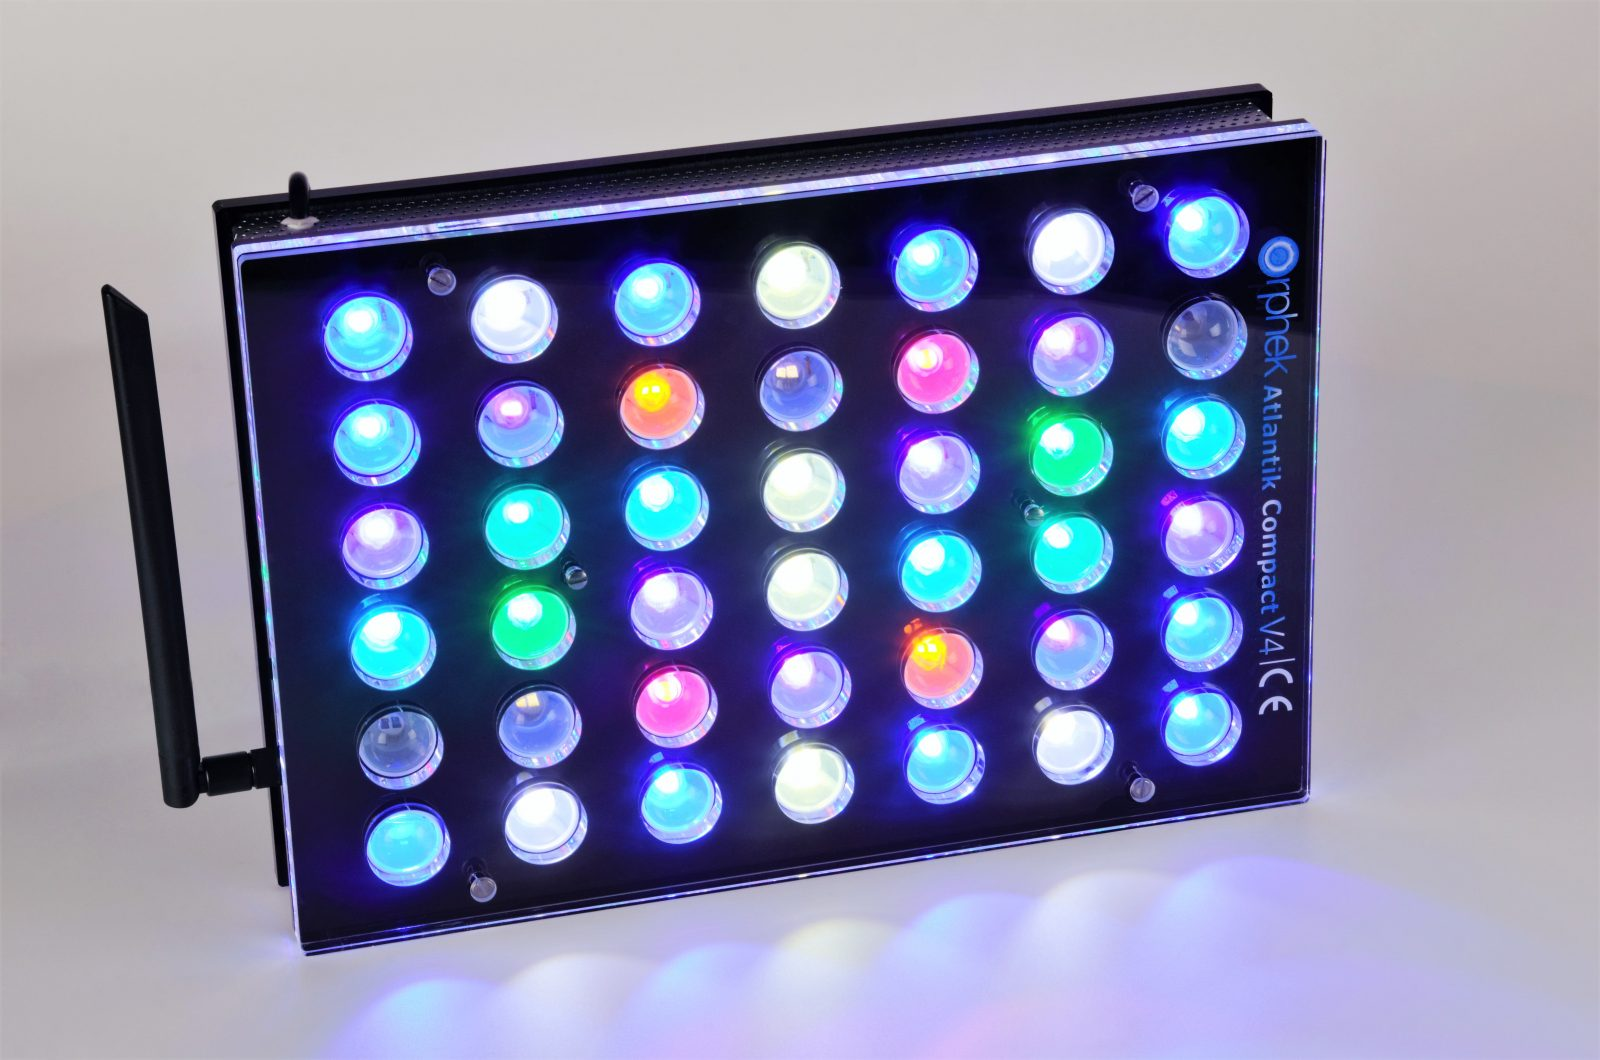 Orphek-Aquarium-LED-Lighting-Atlantik -Compact-V4-light -on - ערוץ 1 + 2 + 3 + 4